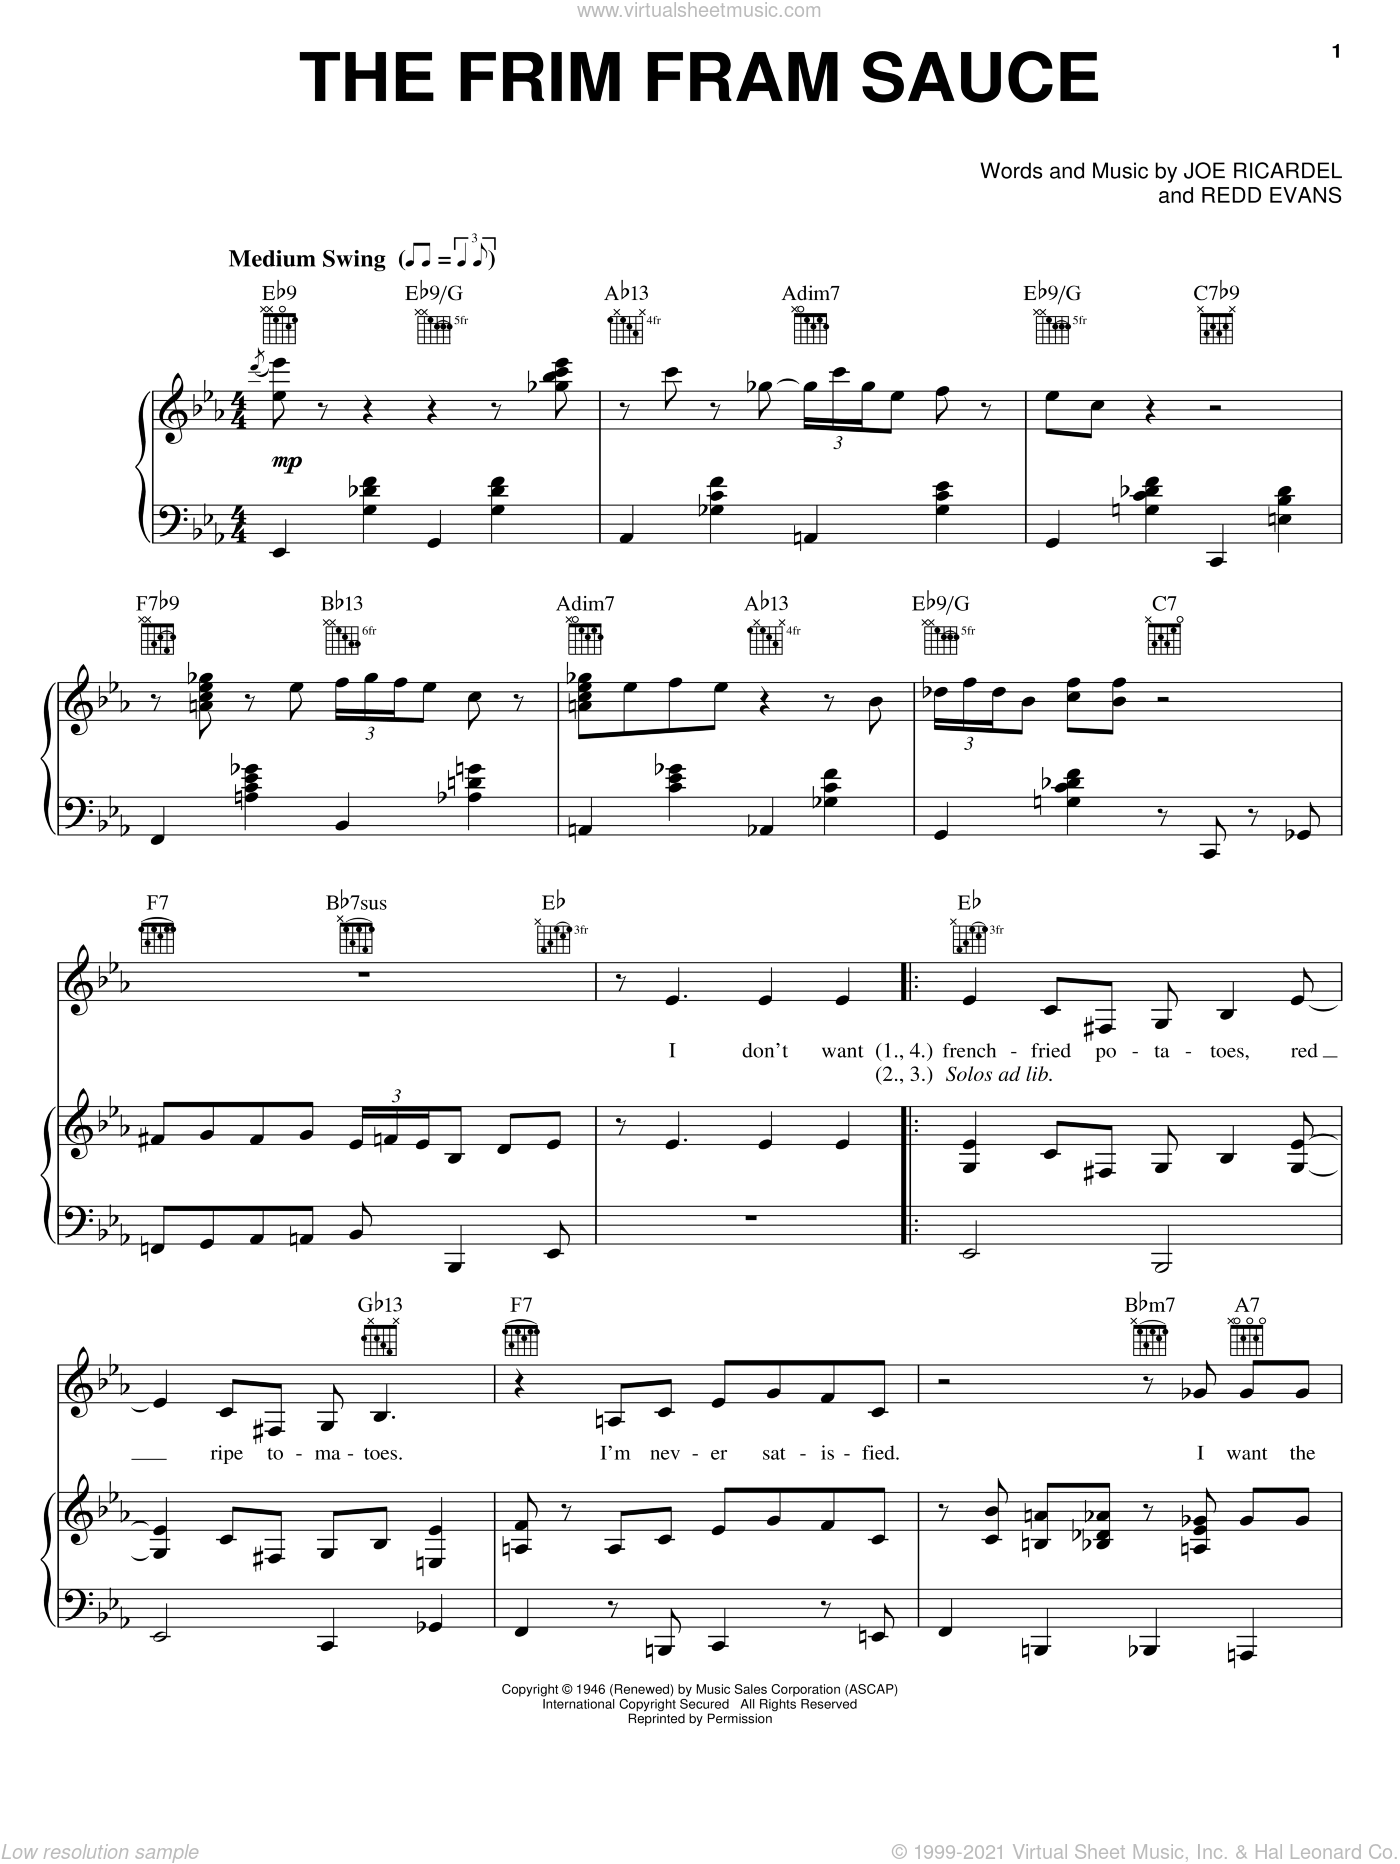 The Frim Fram Sauce sheet music for voice, piano or guitar by Diana Krall, Nat King Cole, Joe Ricardel and Redd Evans, intermediate skill level